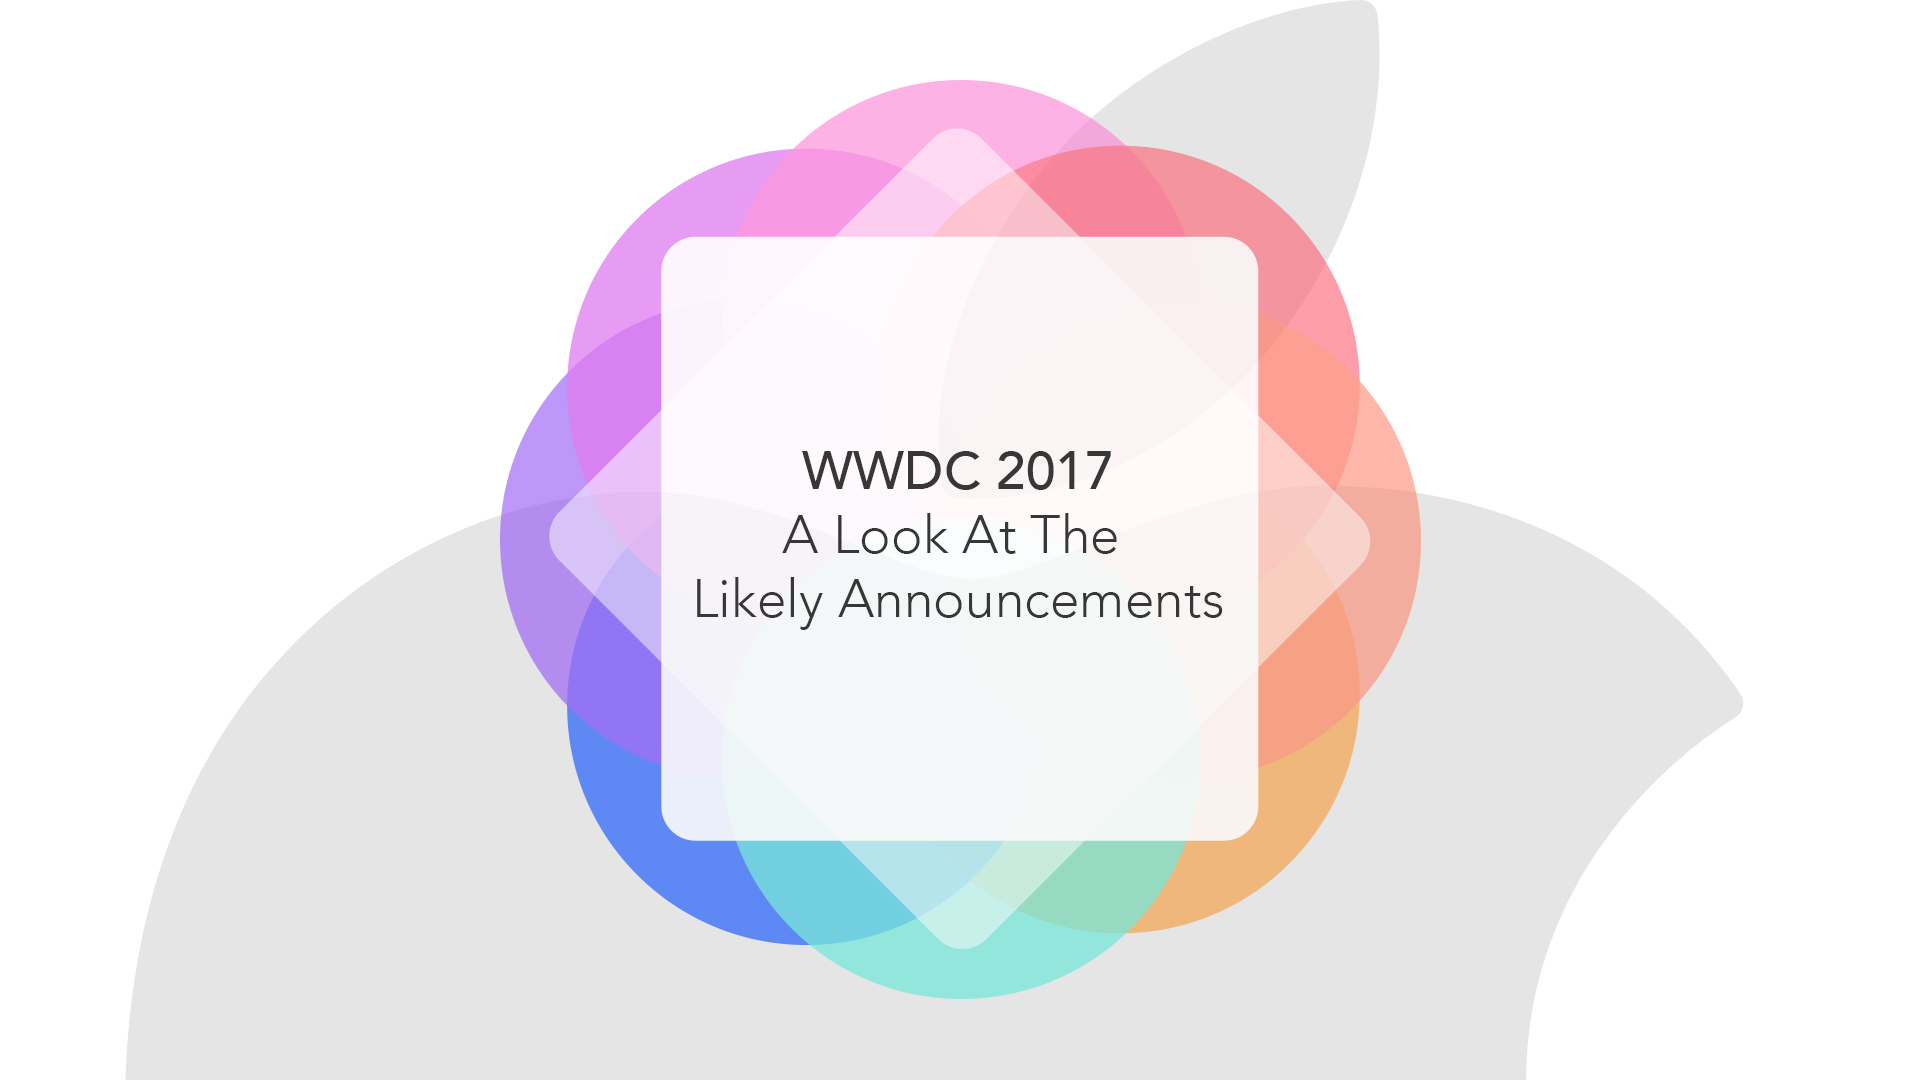 List of expected announcements at WWDC 2017